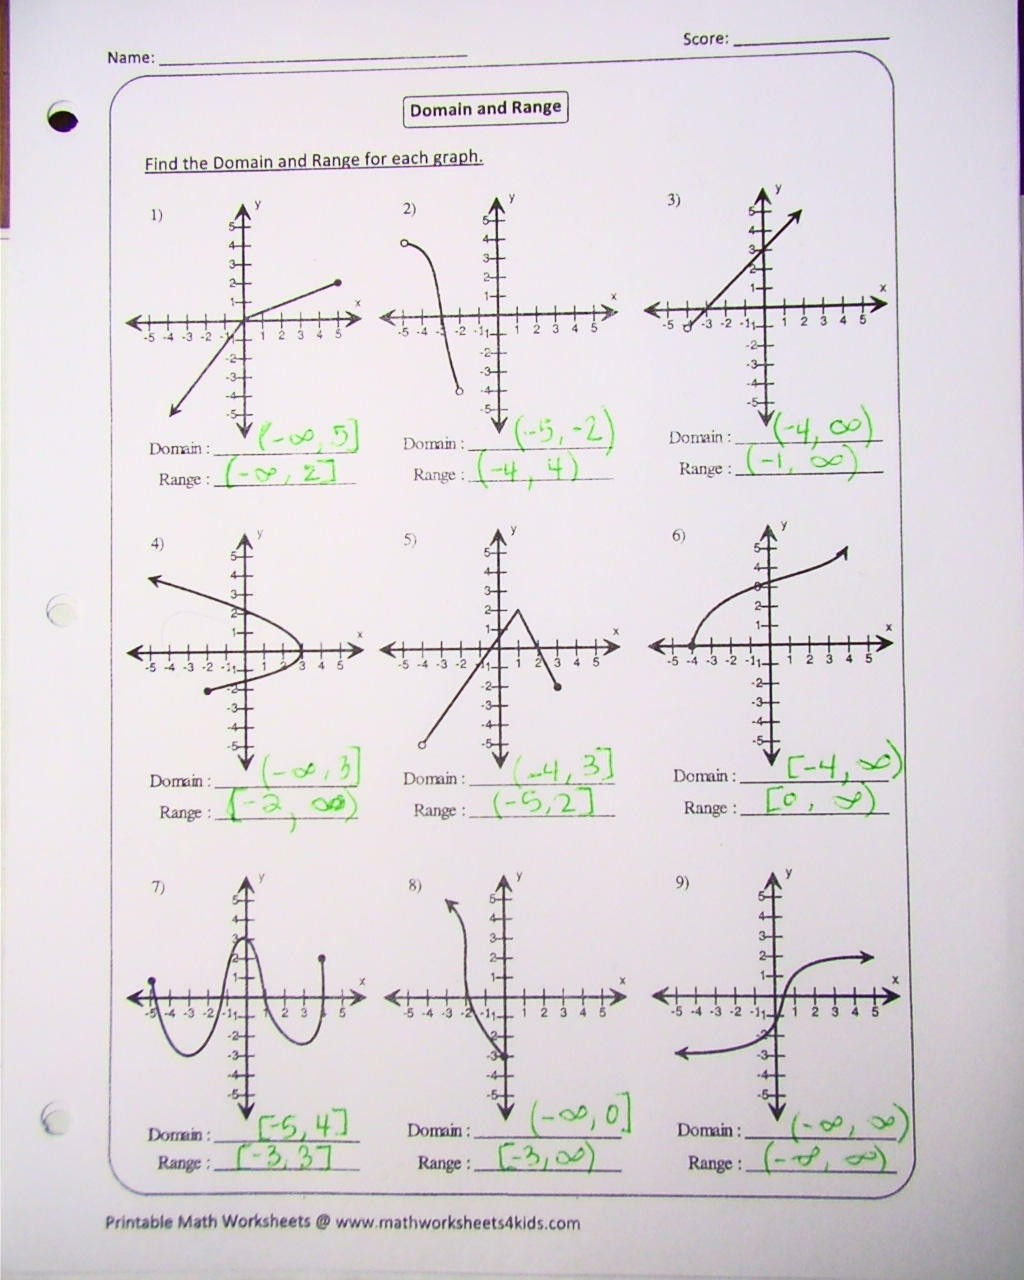 Worksheets Domain Range Worksheet domain and range worksheet 7 answers delwfg com honors precalc